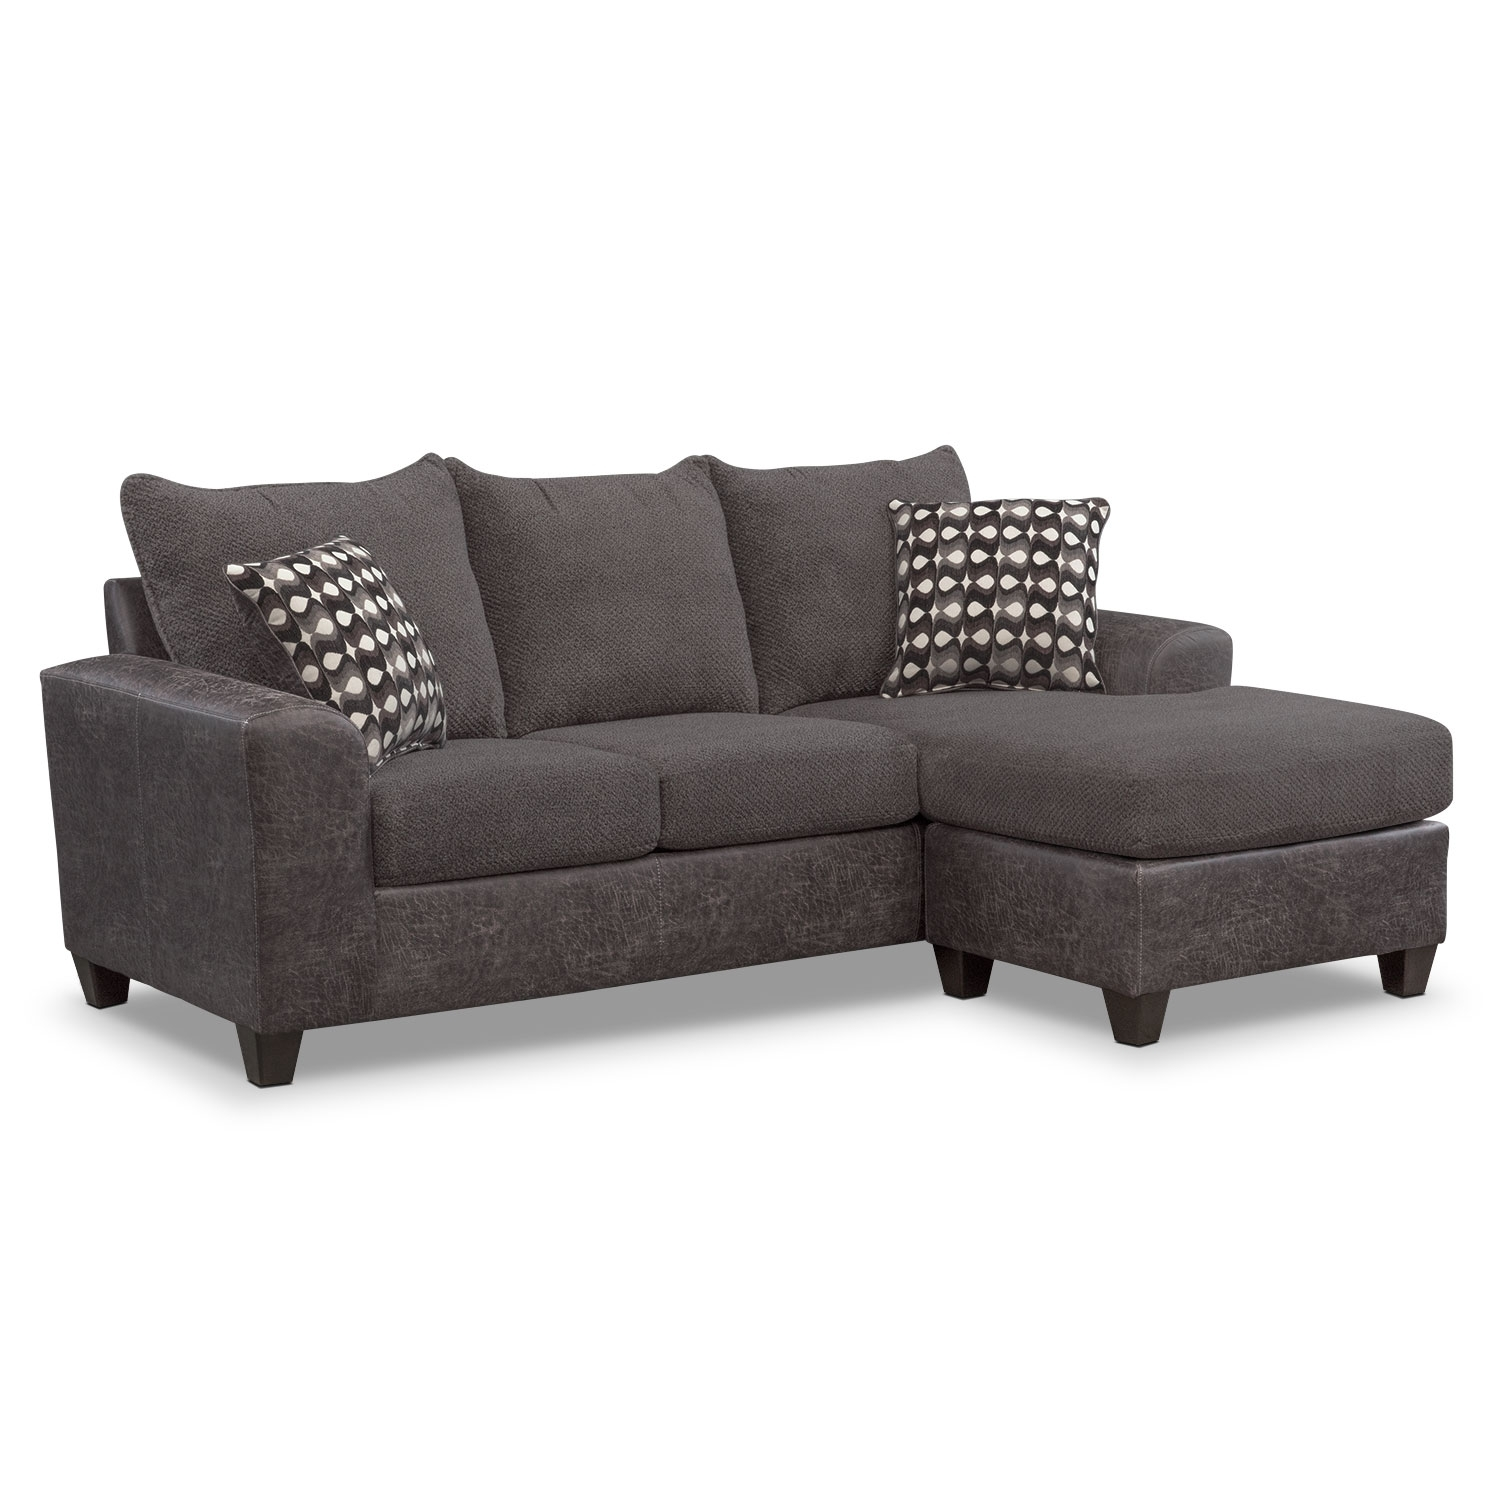 Sofas & Couches | Living Room Seating | Value City Furniture Inside Marcus Chocolate 6 Piece Sectionals With Power Headrest And Usb (Image 23 of 25)